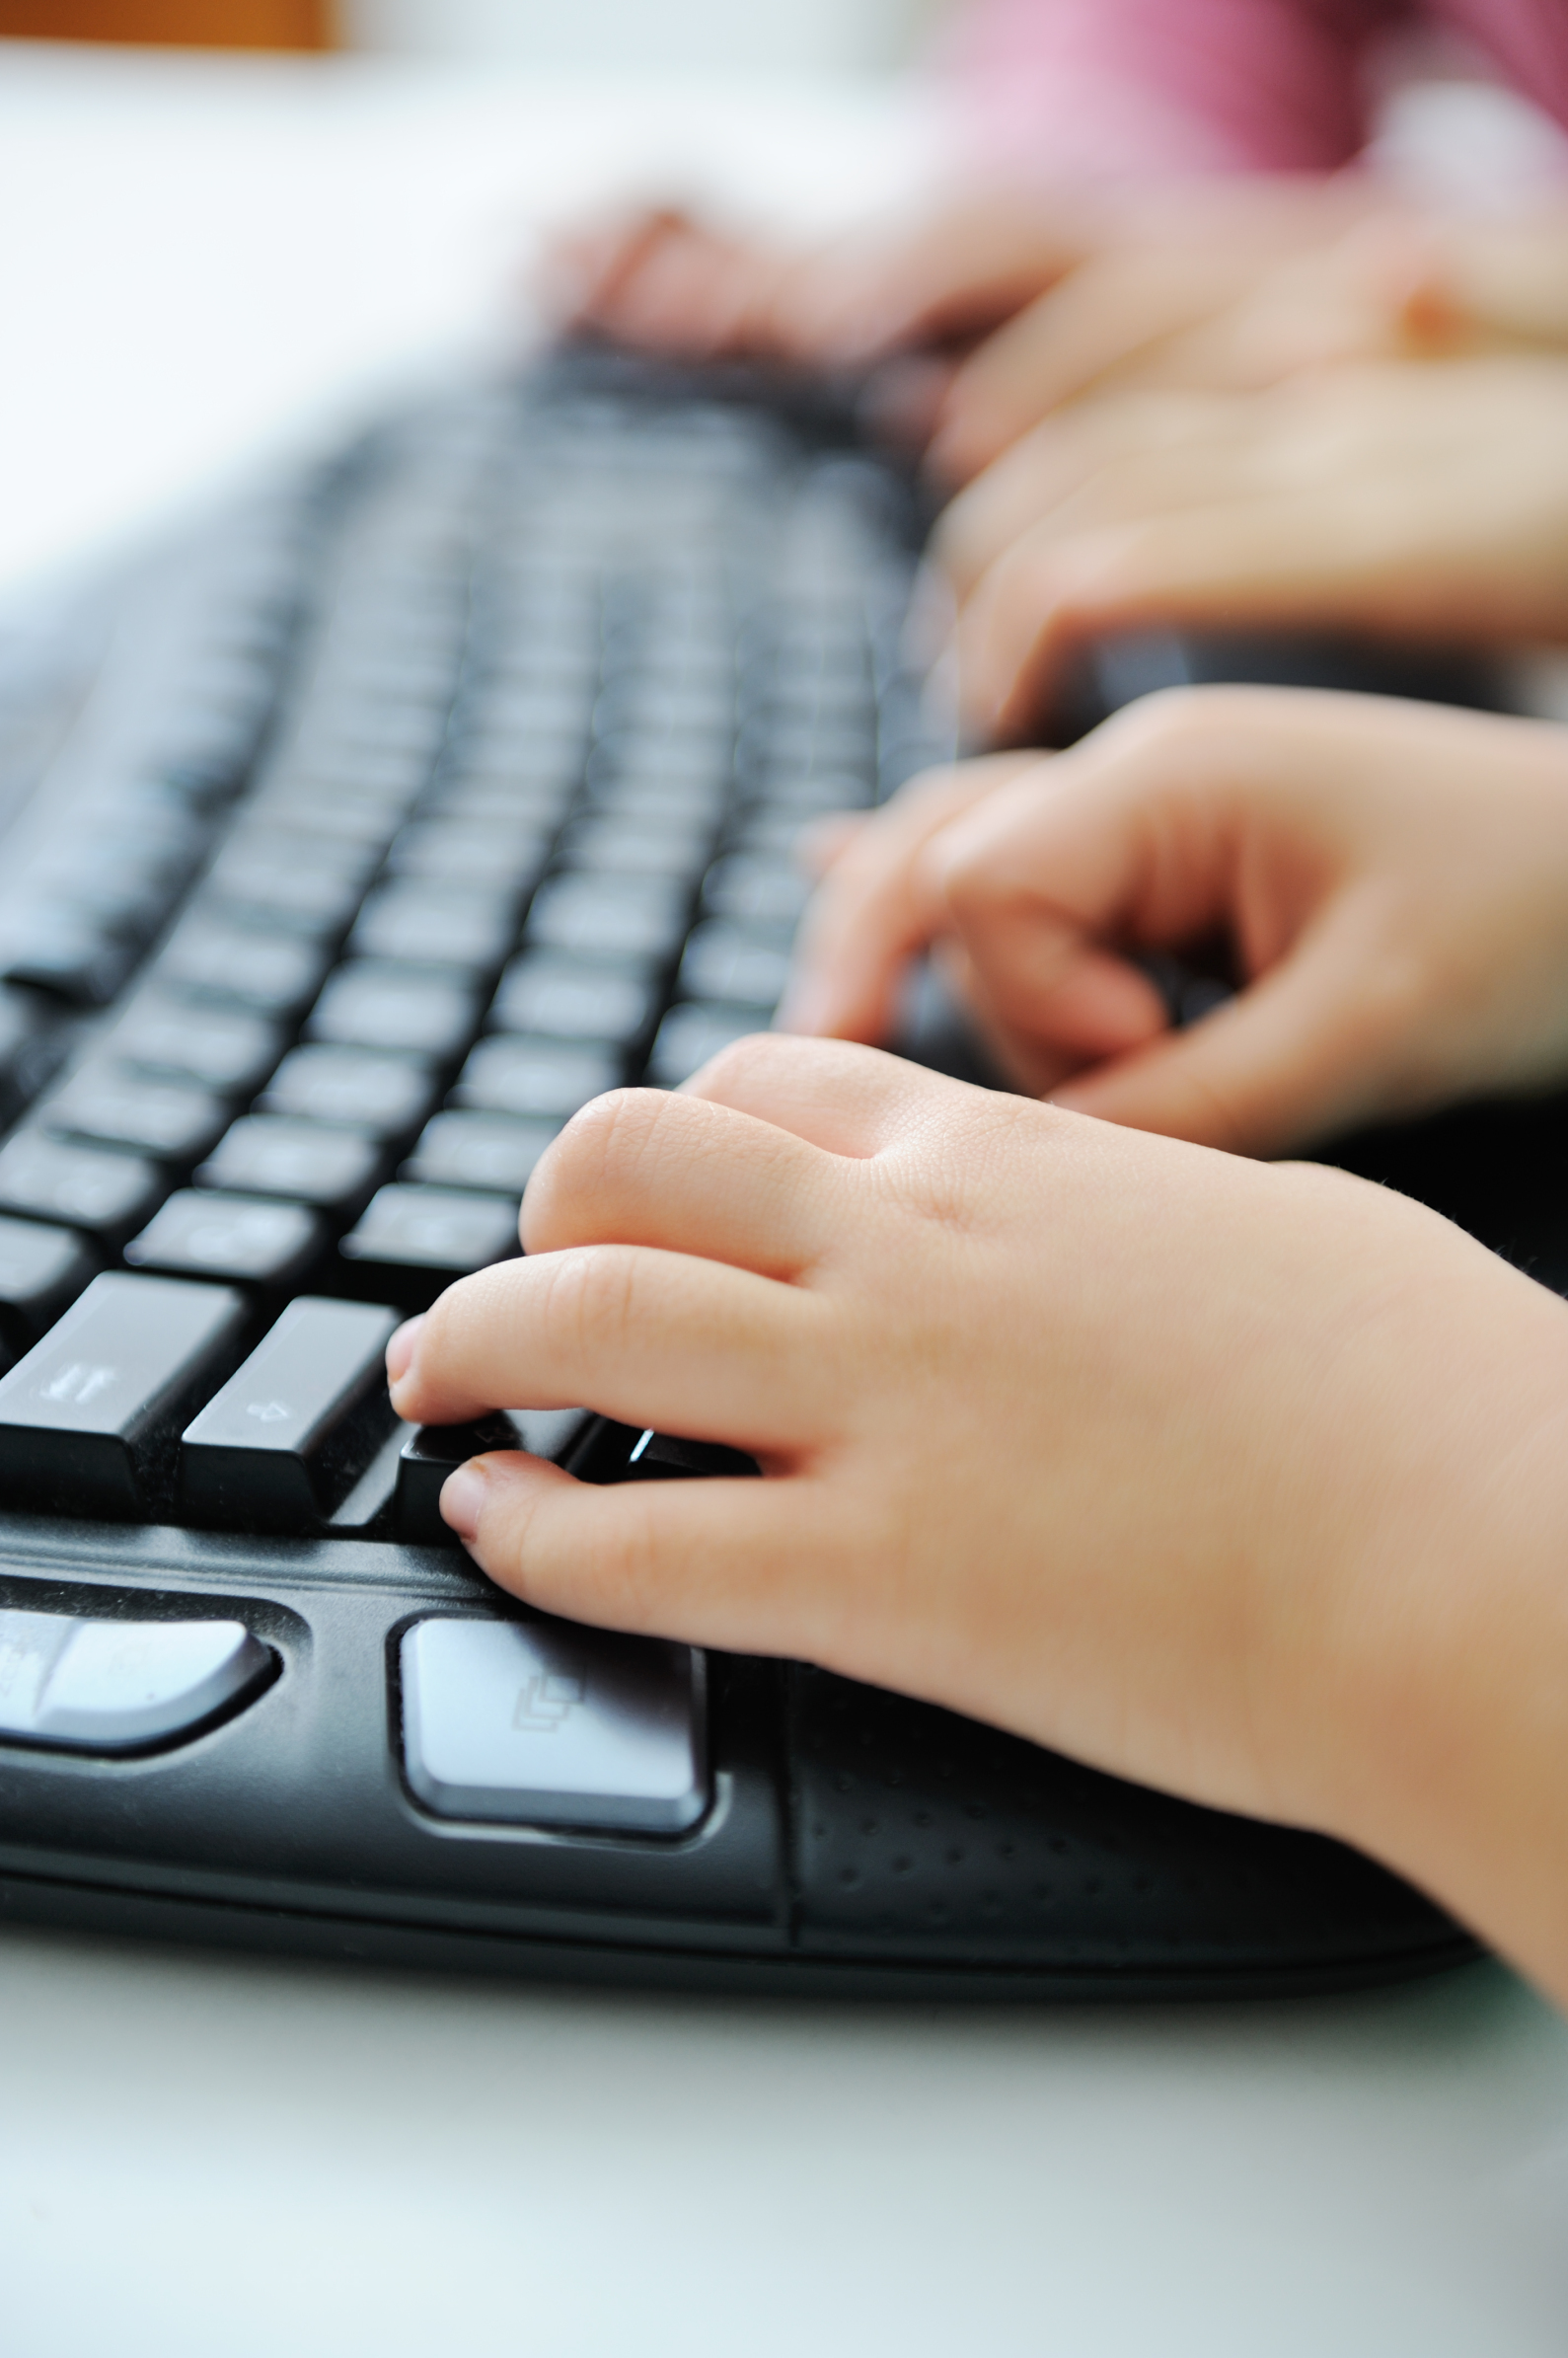 Typing On Keyboard 6 Tech Best Practices ...